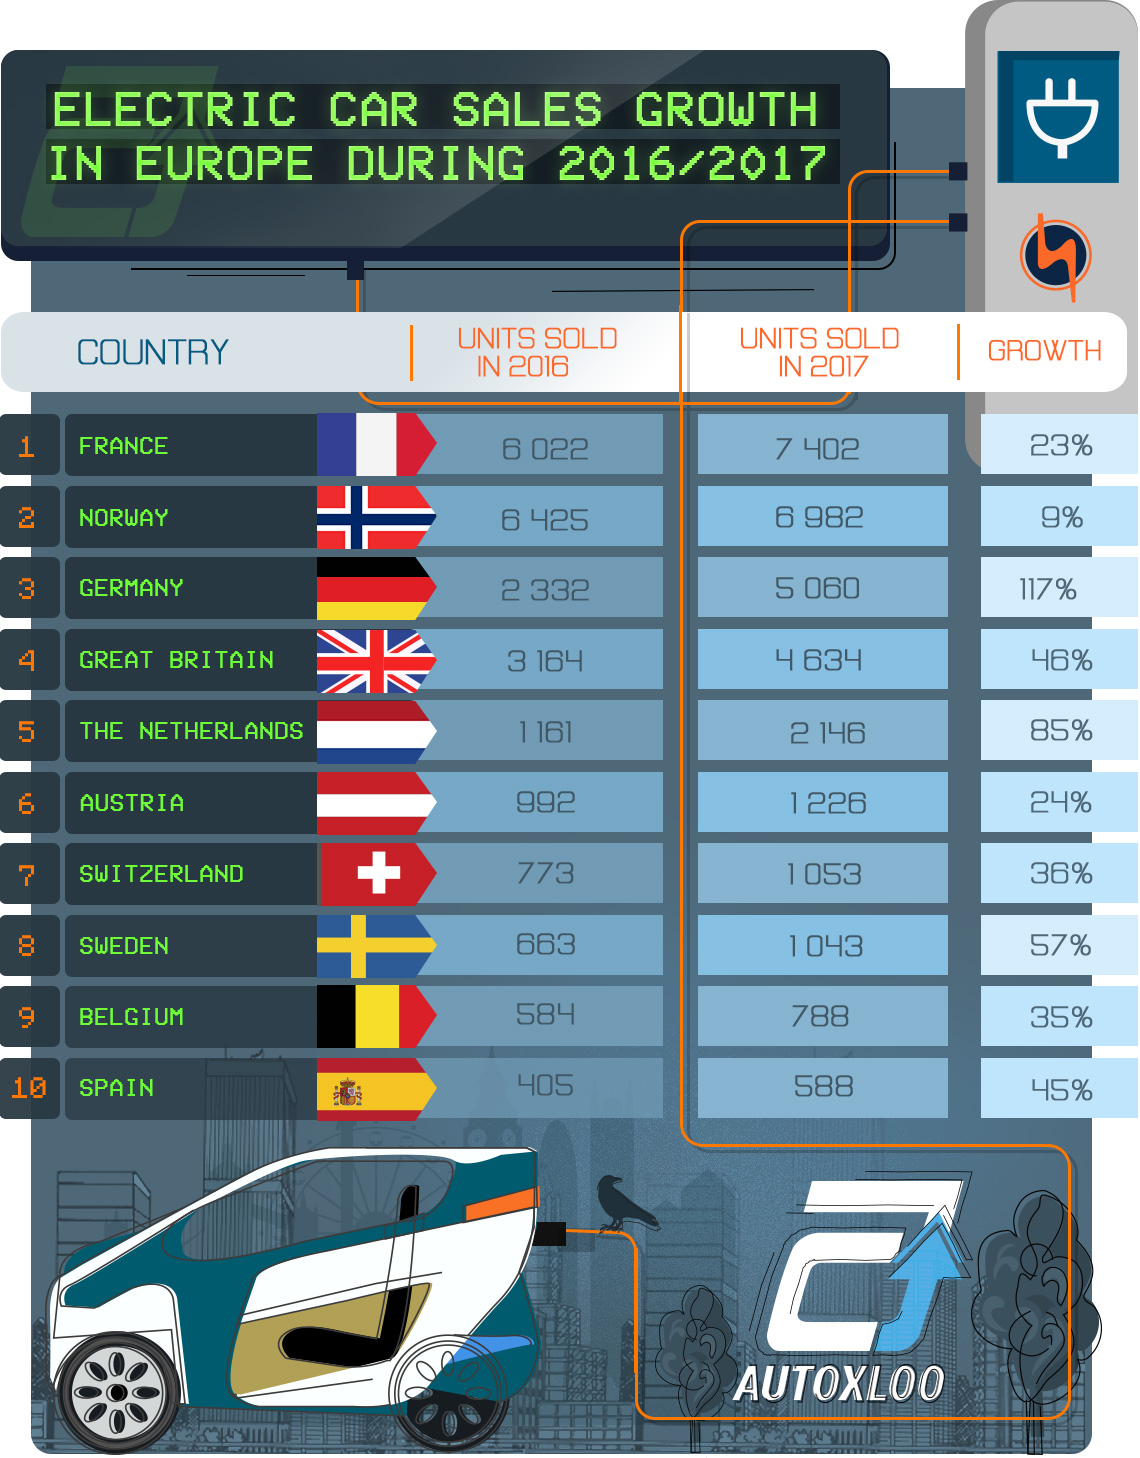 Electric Car Sales Growth in Europe during 2016/2017